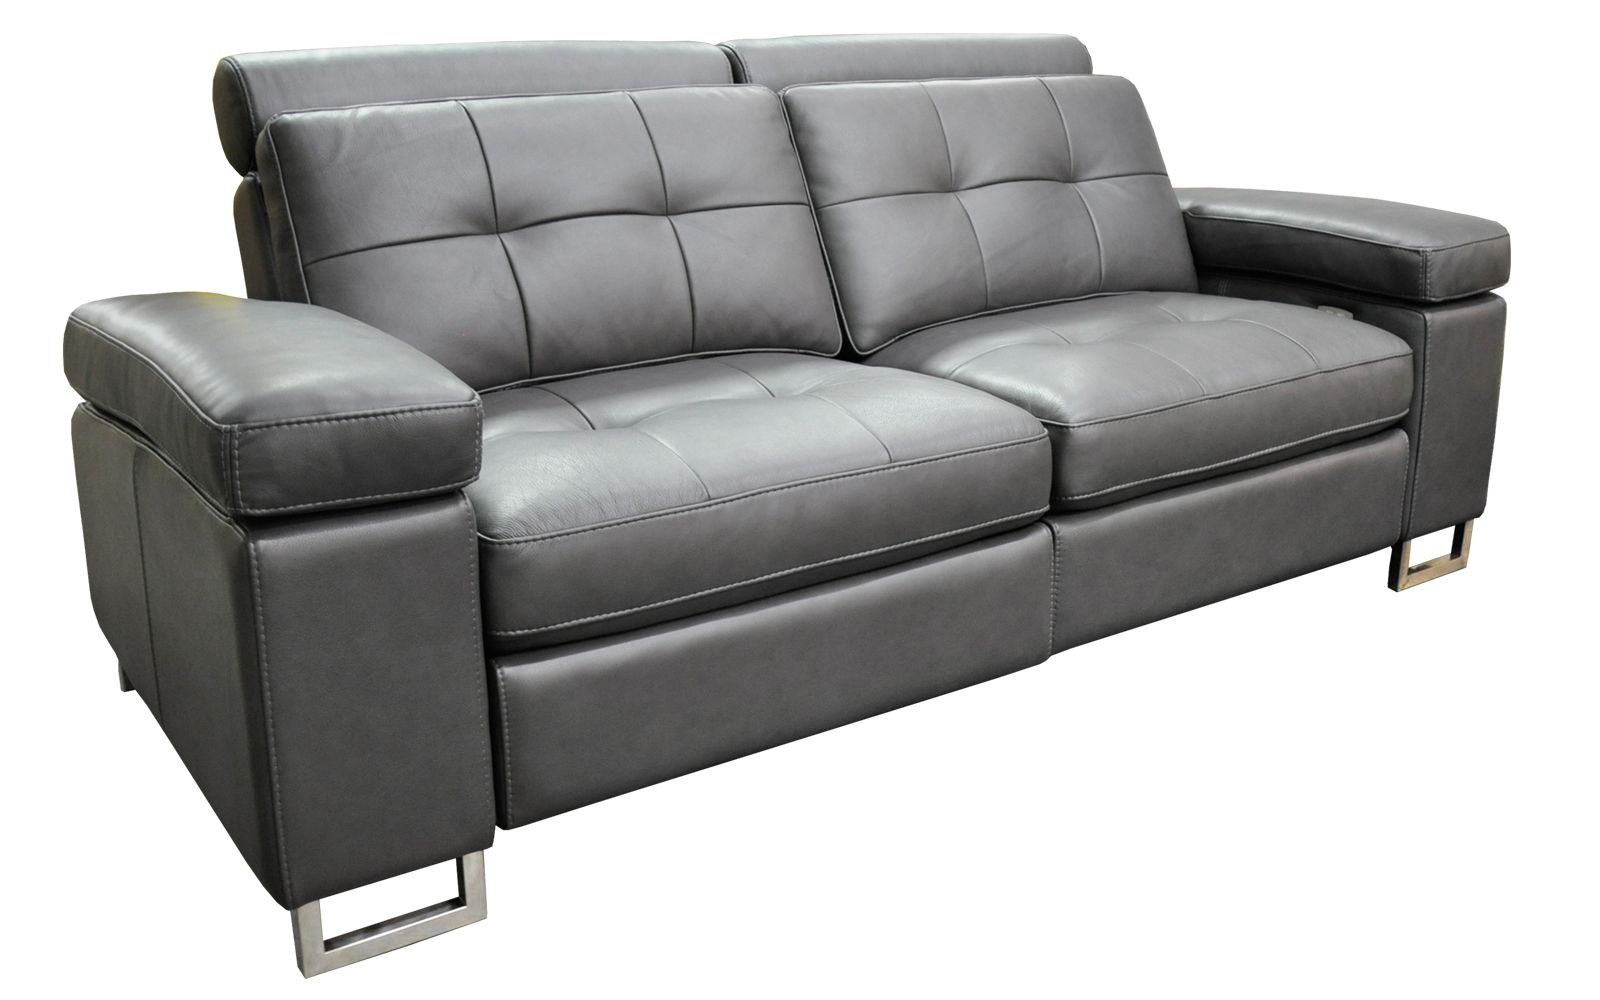 Custom American Made Leather Furniture Over 100 Styles Of Sectionals Sofas Chairs Recliners And Home Theater Seating